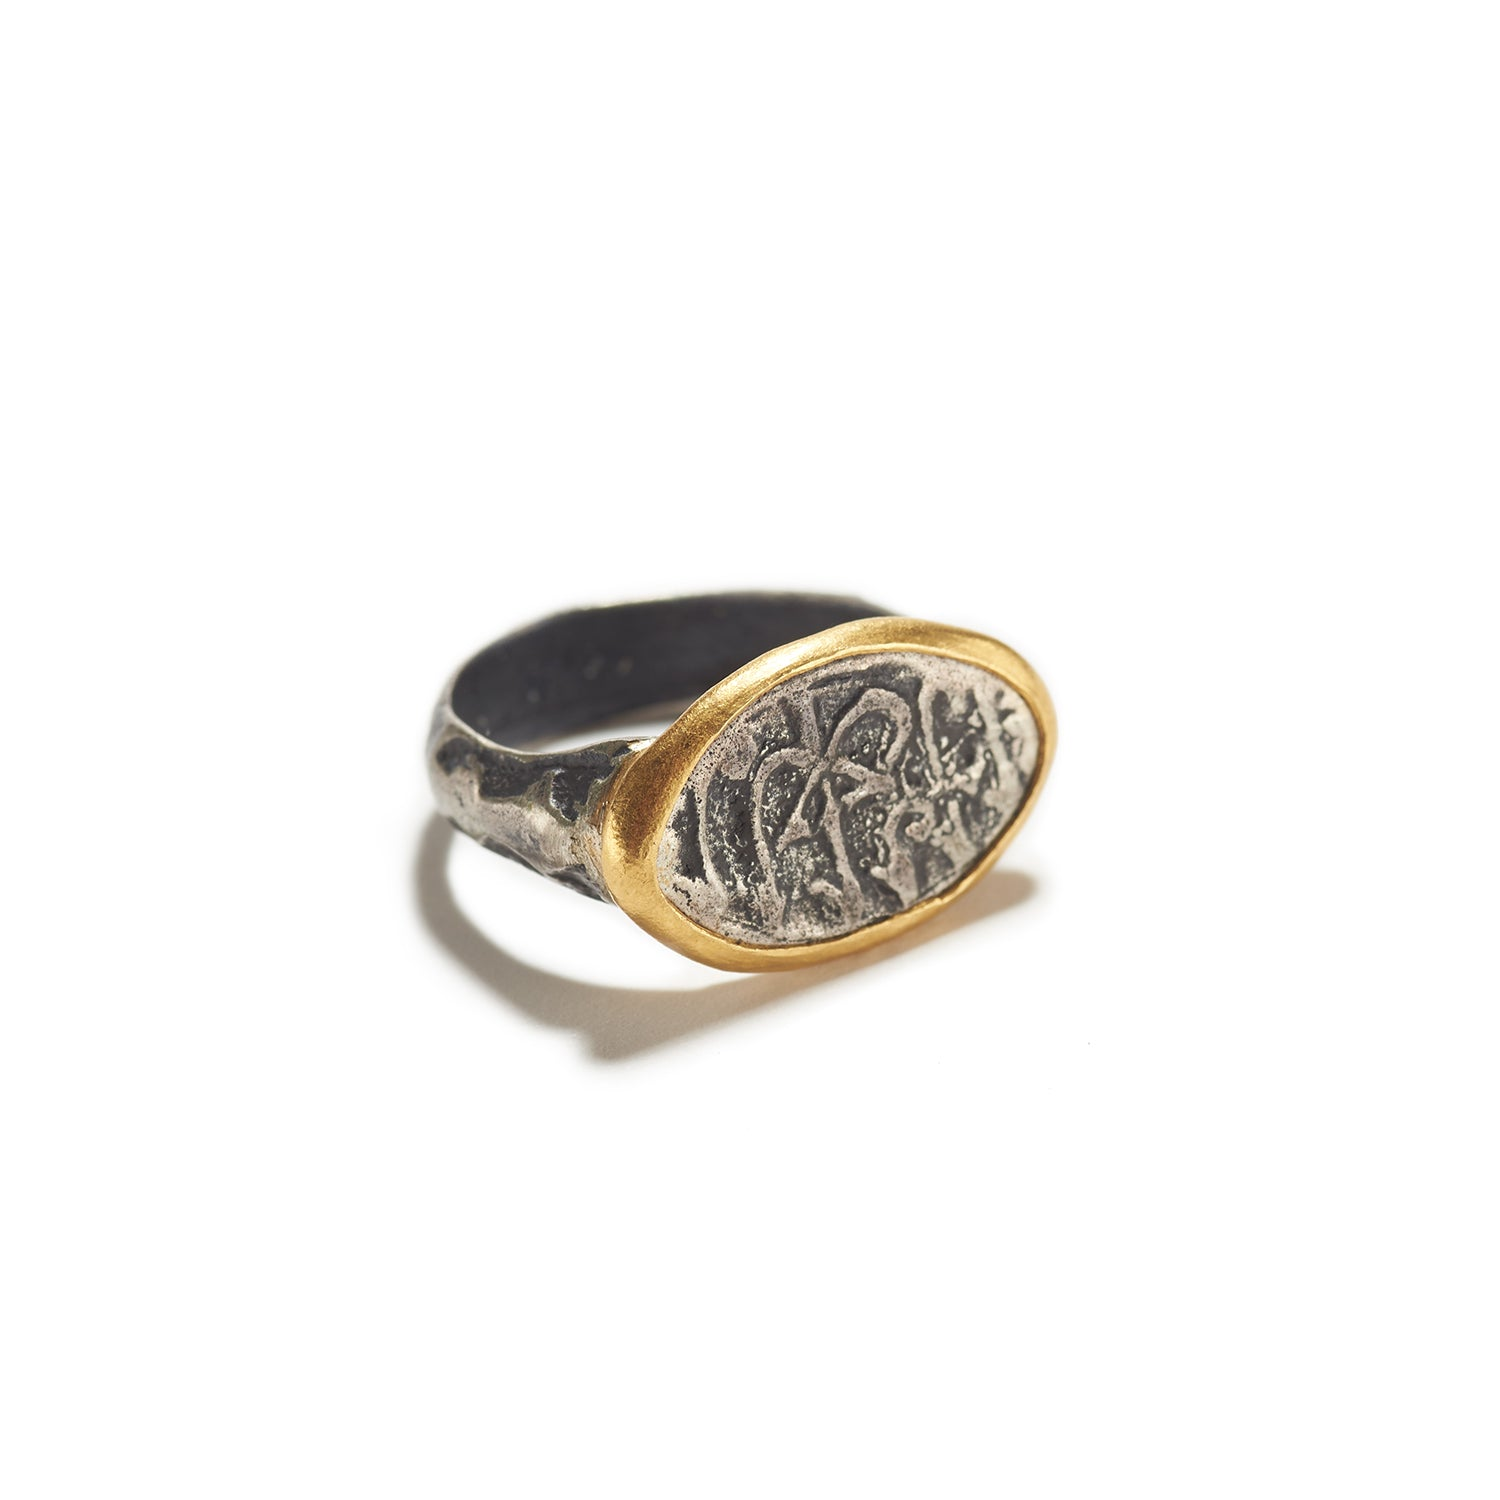 Ancient Calligraphy Ring